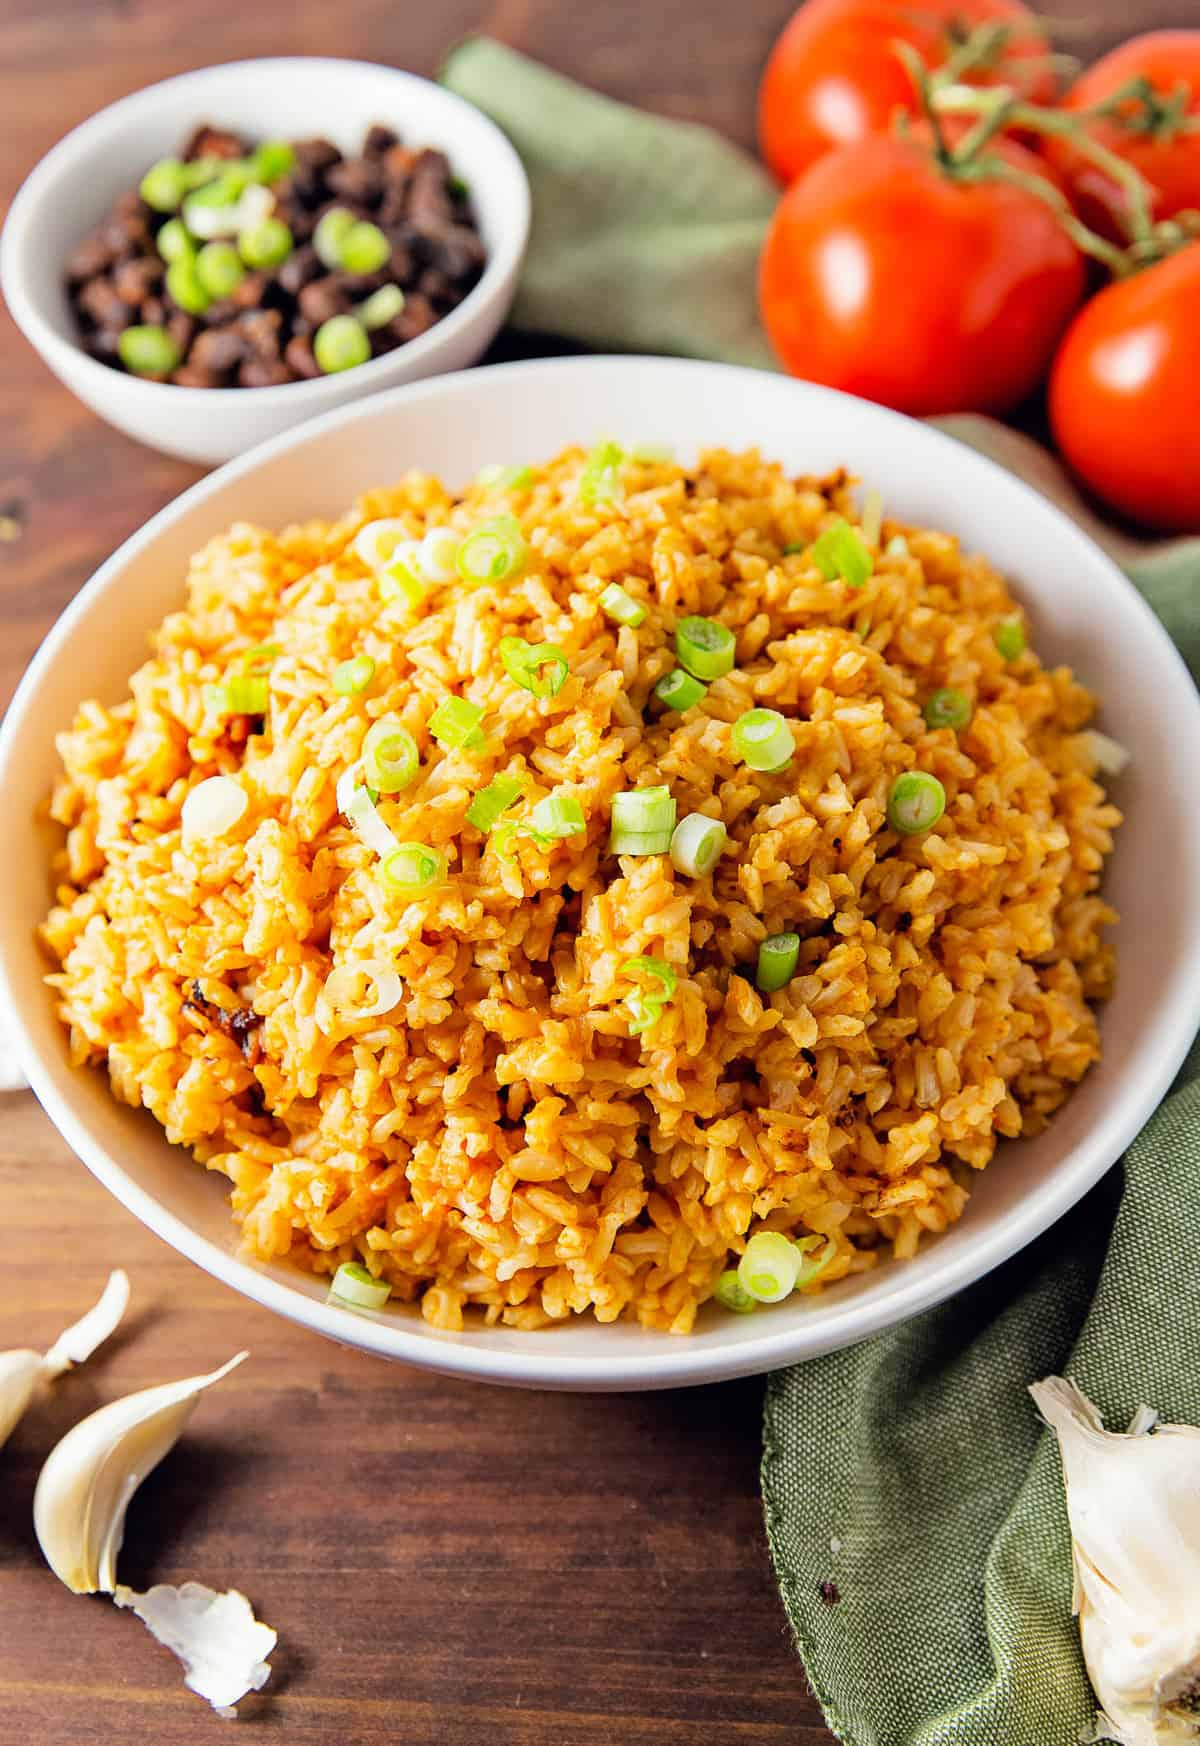 Mexican rice, rice, Mexican, rice dish, recipe, Mexican rice recipe, rice recipe, Spanish rice, Spanish, vegan, vegan recipe, whole food plant based recipe, whole food plant based, vegetarian, vegetarian recipe, gluten free, gluten free recipe, vegan dinner, vegan meals, vegetarian dinner, vegetarian meal, whole food plant based dinner, whole food plant based meal, gluten free dinner, gluten free meal, healthy, oil free, no oil, quick dinner, fast dinner, entertaining, wfpb, dairy free, no dairy, traditional, Mexican, classic, delicious, the best, winter, fall, spring, summer, fast, easy, quick, simple, 30 minutes, side, side dish,